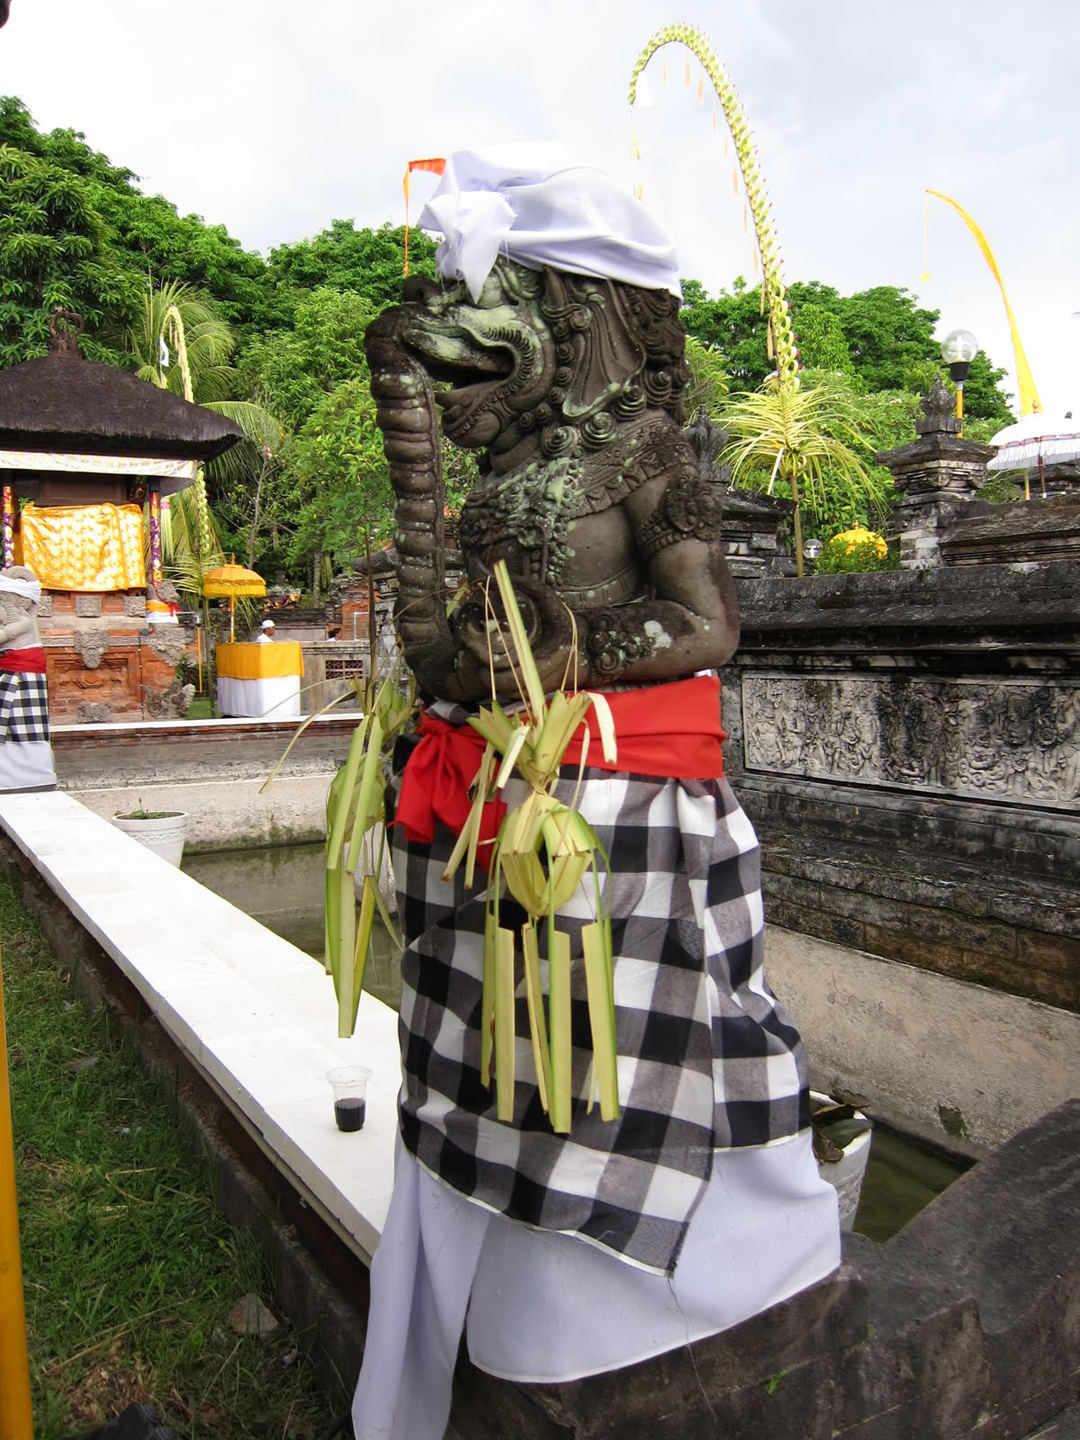 Kain Poleng - Symbols of Everyday Life in Bali for Tourist to Aware